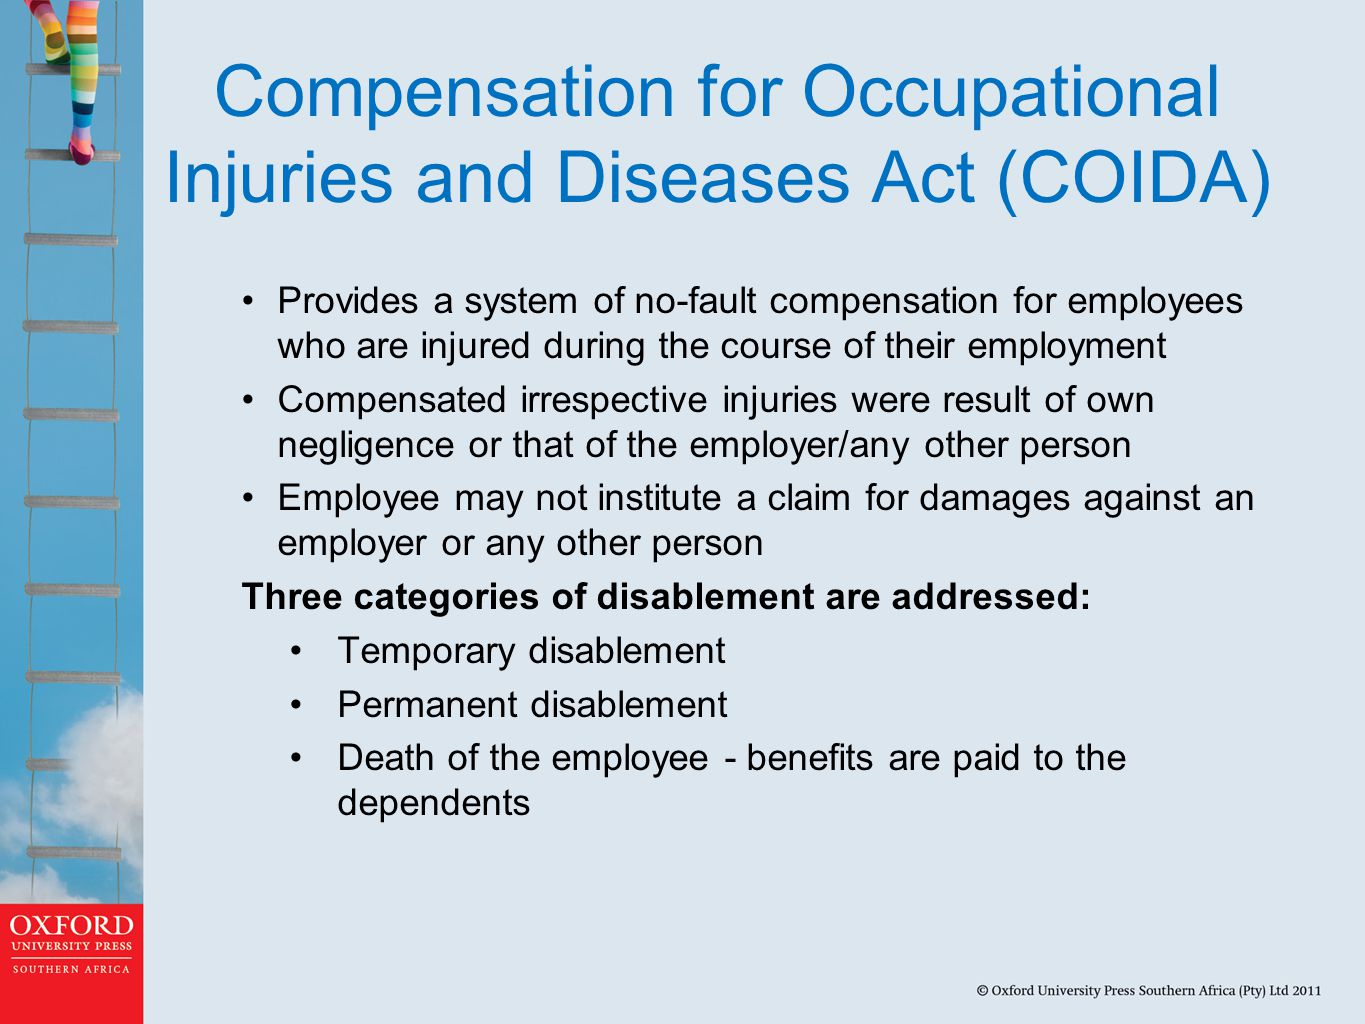 Compensation for Occupational Injuries and Diseases Act (COIDA) Provides a system of no-fault compensation for employees who are injured during the course of their employment Compensated irrespective injuries were result of own negligence or that of the employer/any other person Employee may not institute a claim for damages against an employer or any other person Three categories of disablement are addressed: Temporary disablement Permanent disablement Death of the employee - benefits are paid to the dependents